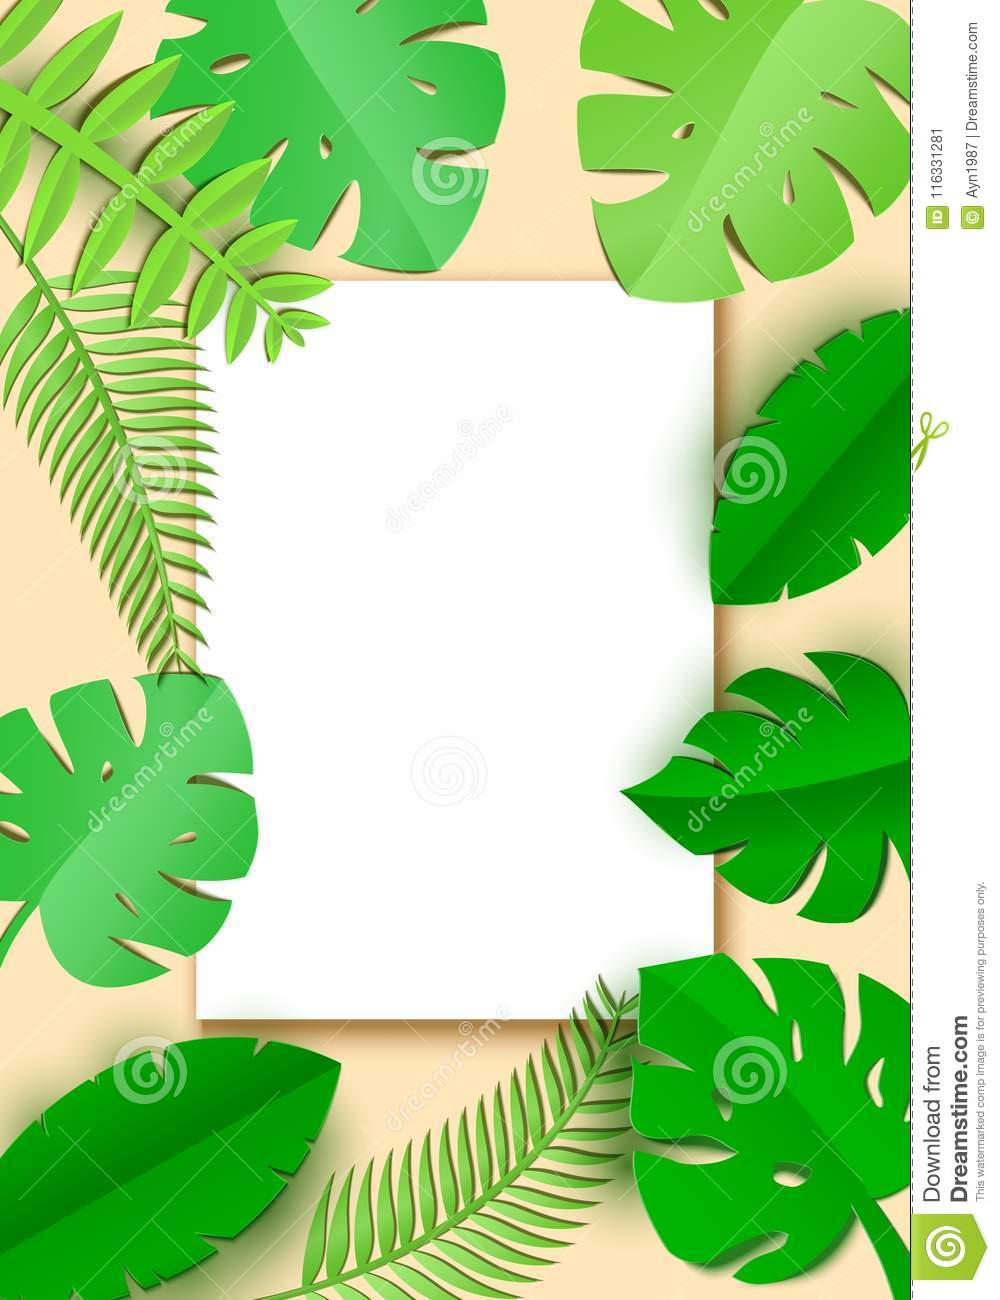 Jungle Leaves In Art Paper Style With White Sheet With Place For